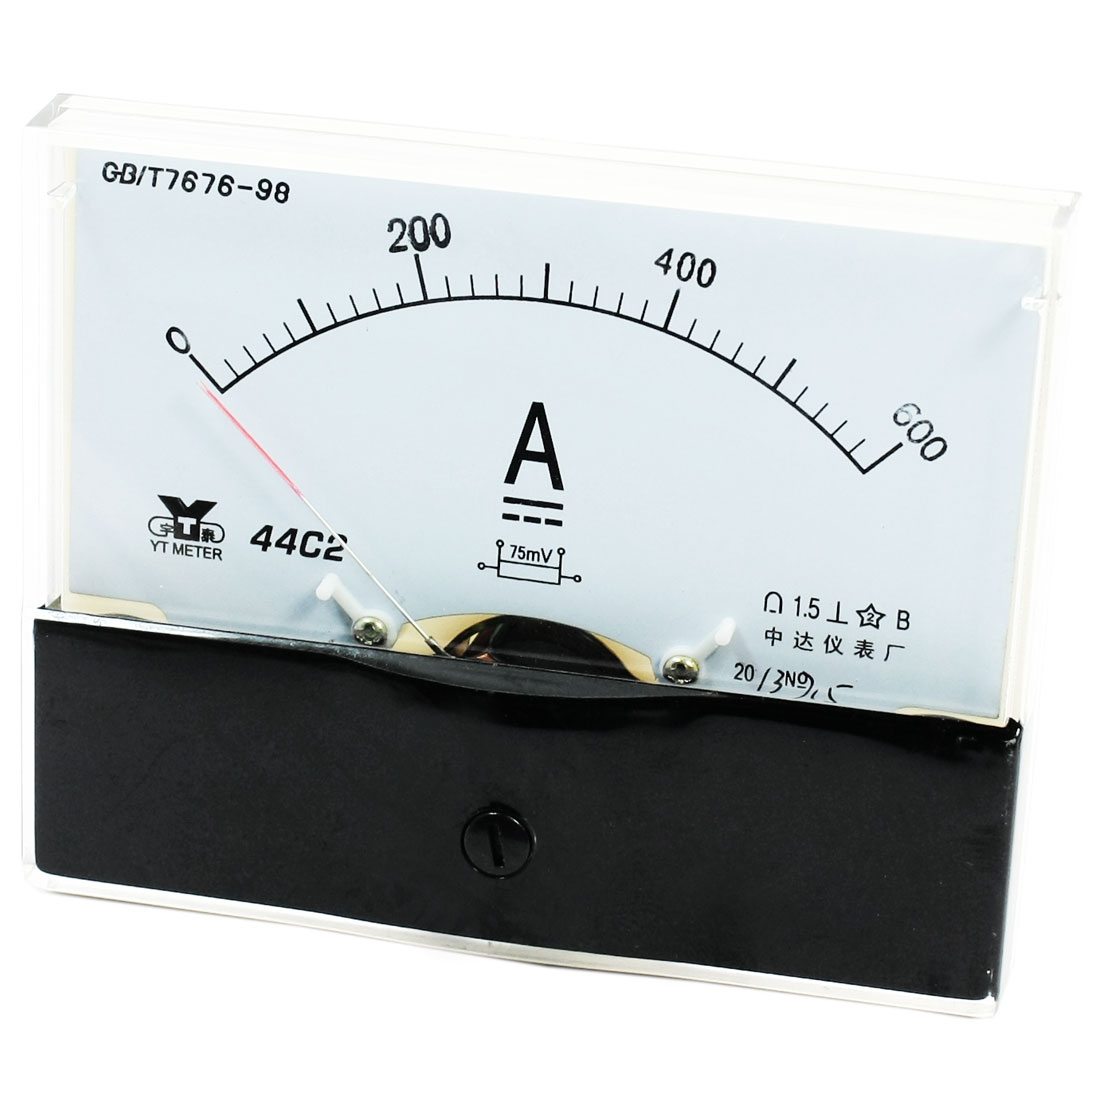 Rectangle Measurement Tool Analog Panel Ammeter Gauge DC 0 - 600A Measuring Range 44C2